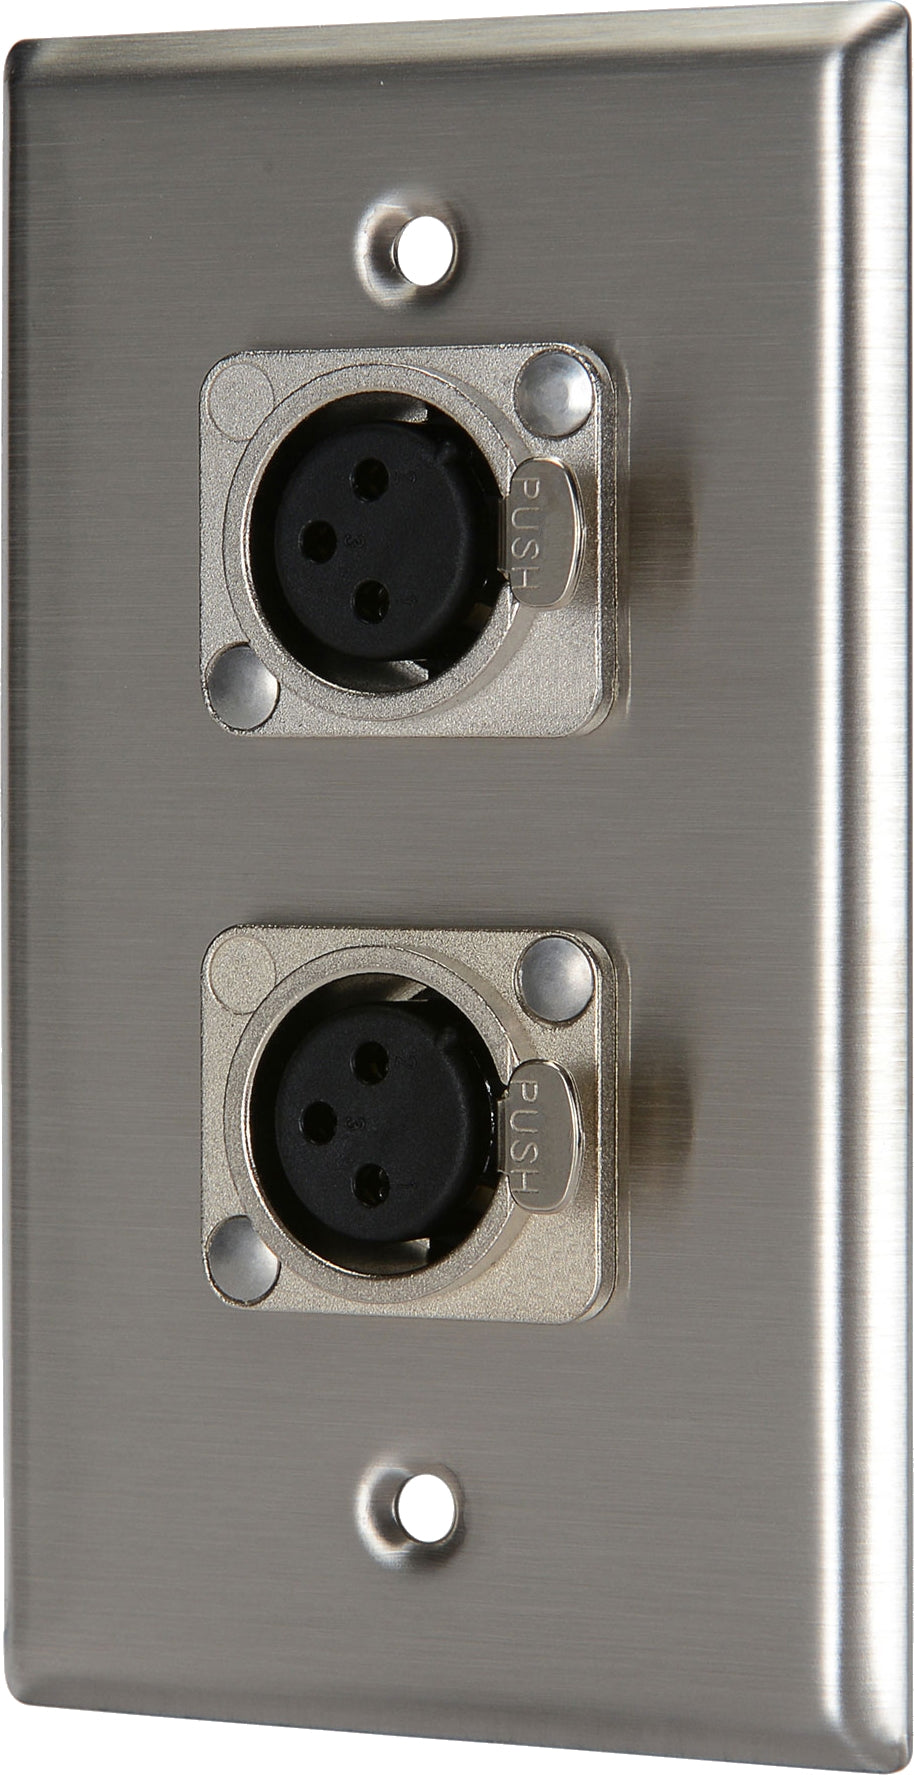 07-6072-22 Stainless Steel Wall Plate with 2*XLR Female